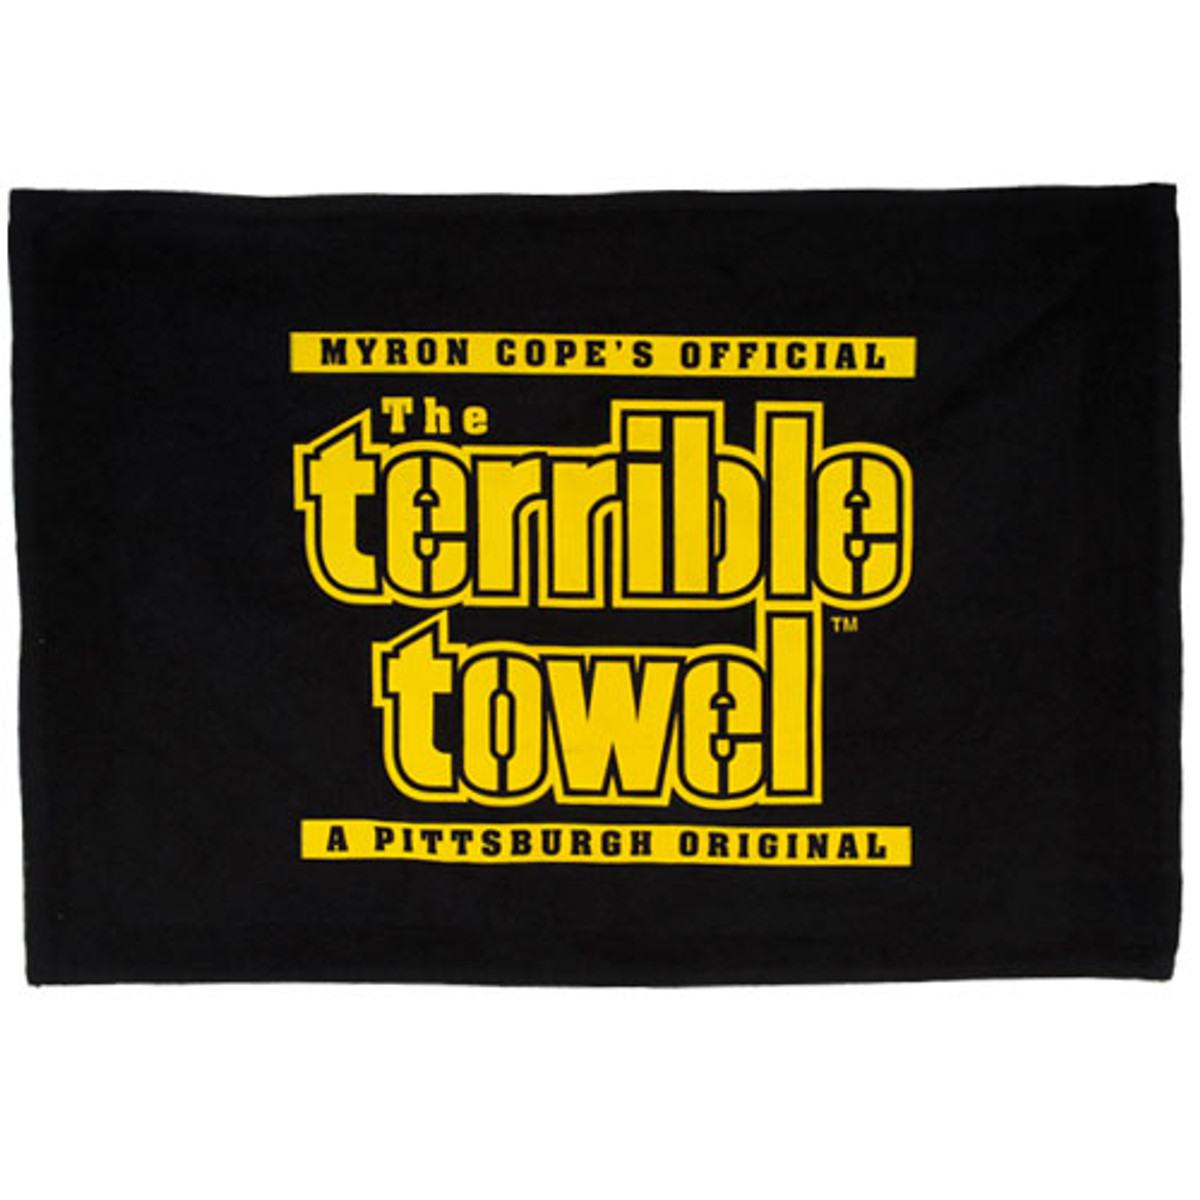 Myron Cope's Official  The Terrible Towel A Pittsburgh Original - Black